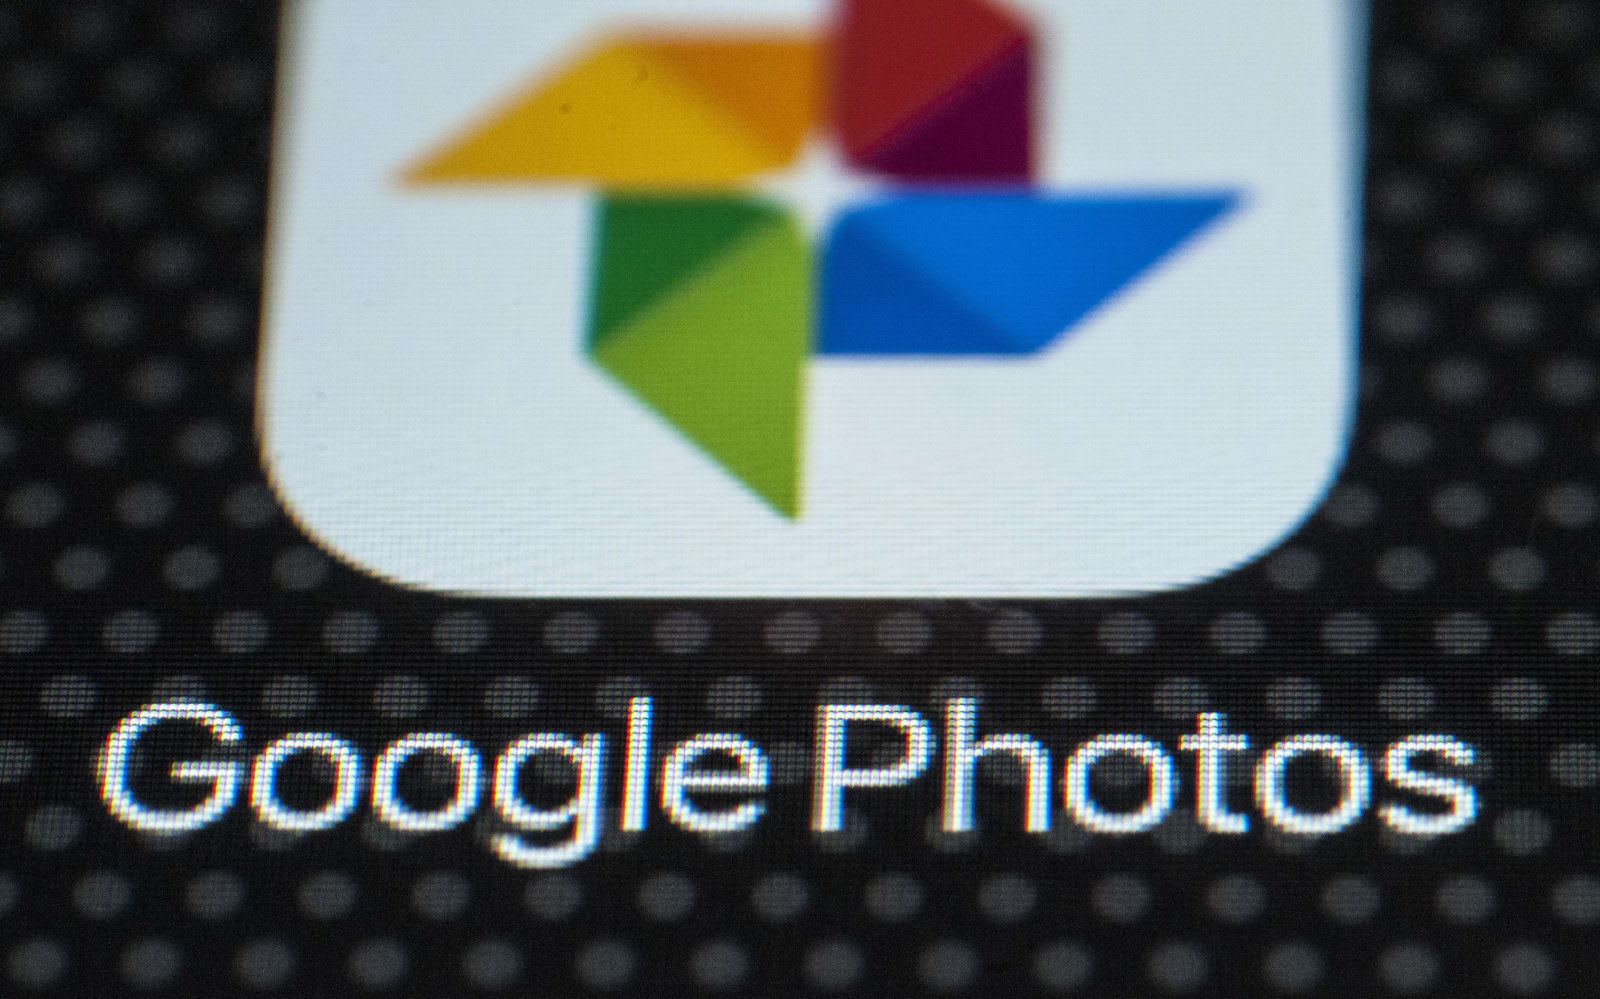 Google Photos now has the ability to search for text in images